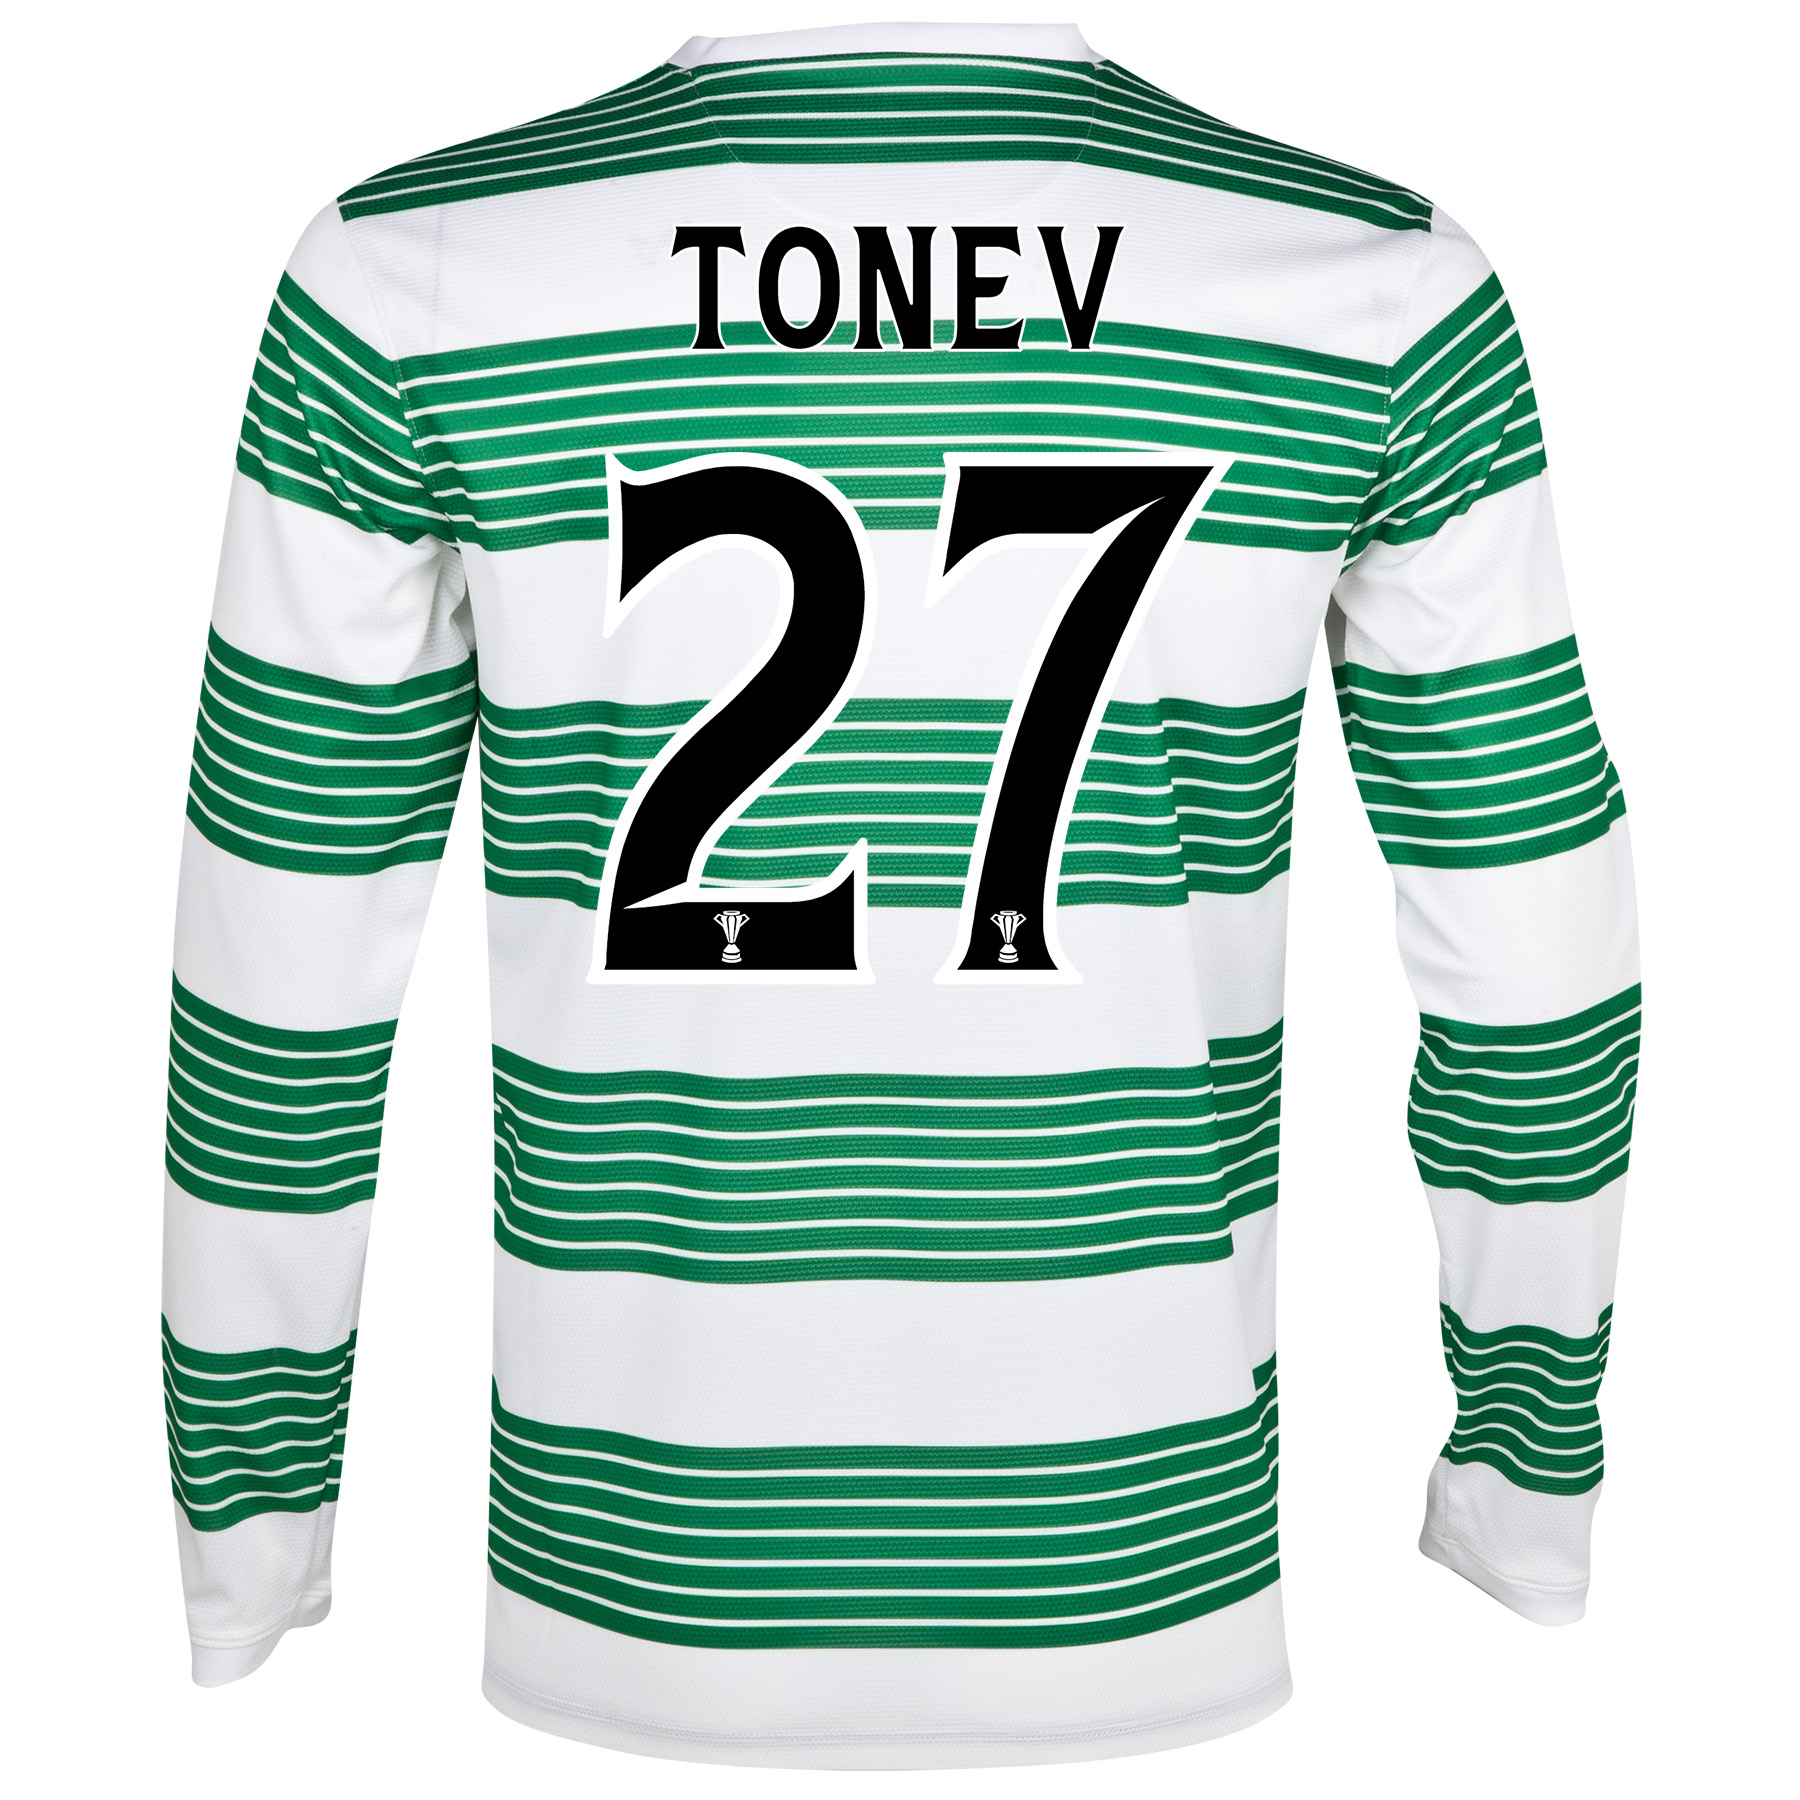 Celtic Home Shirt 2013/15 - L/S- Unsponsored with Tonev 27 printing